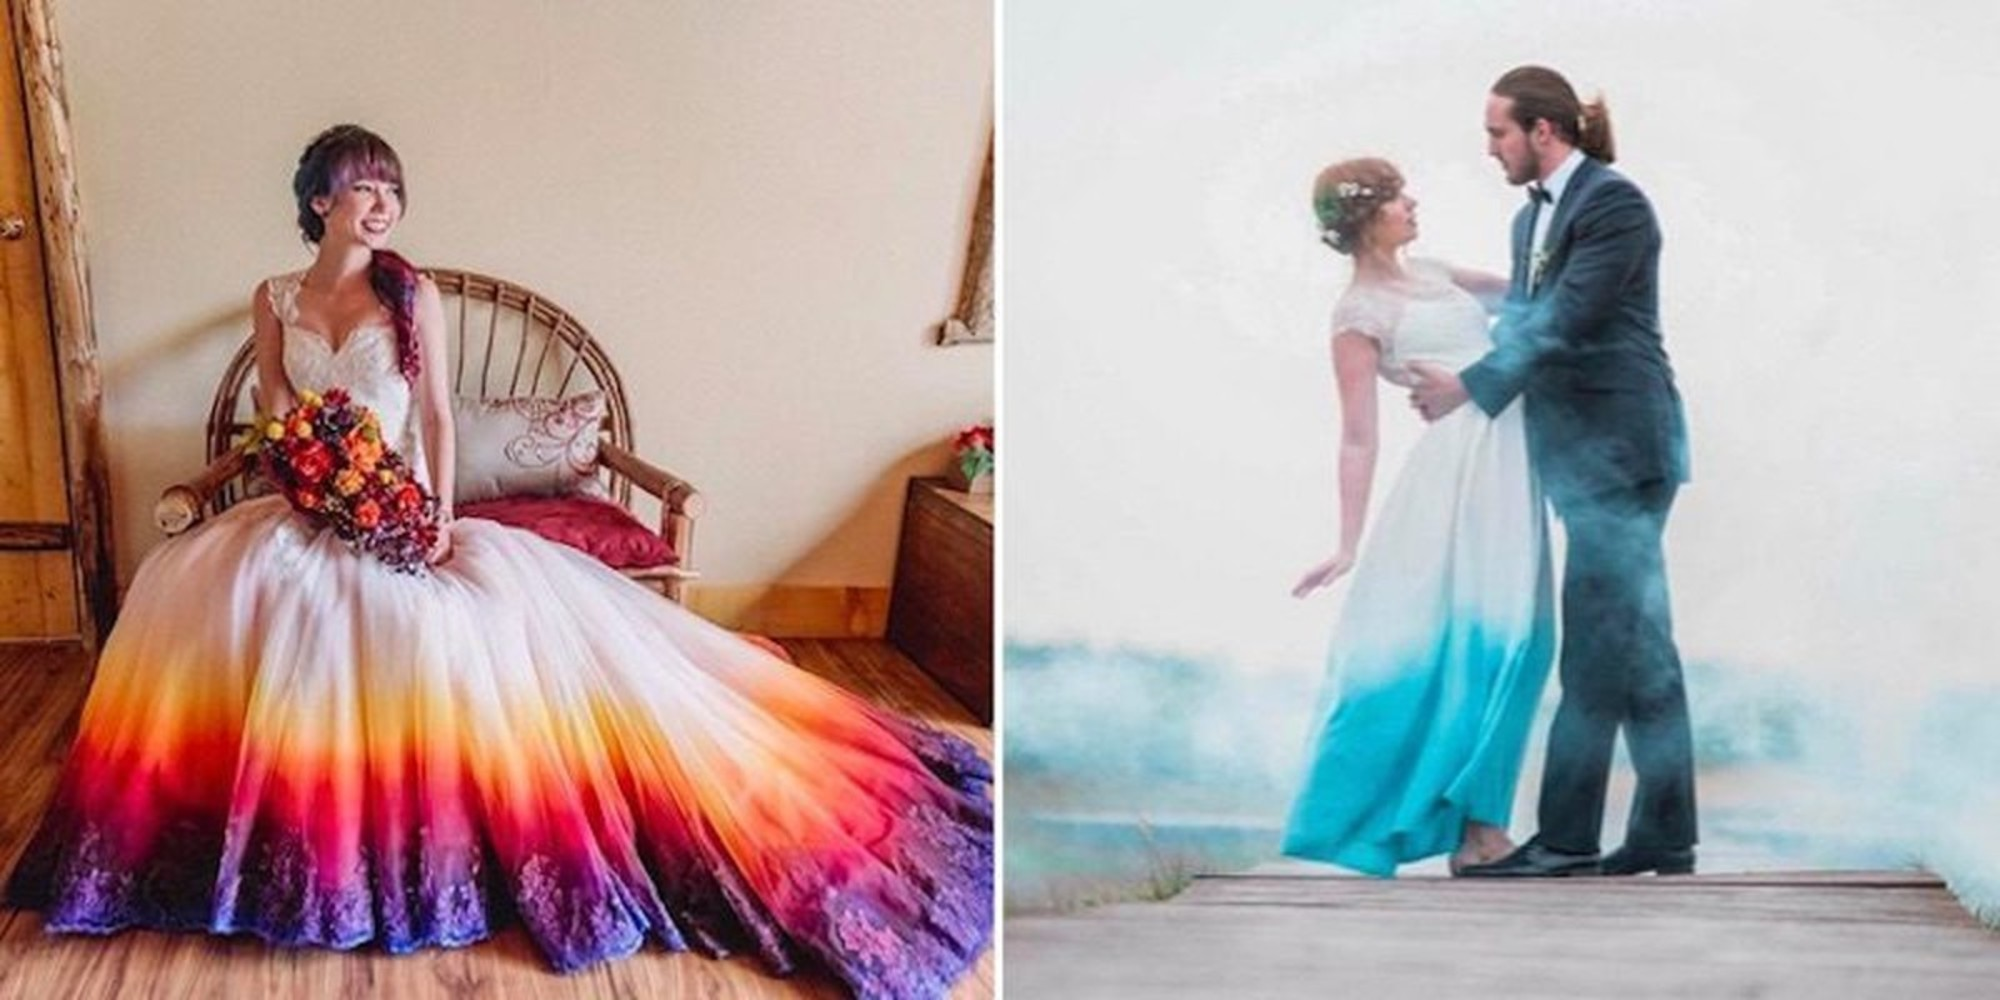 Ombre Dip Dye Wedding Gowns Are The Hottest Trend In Bridal Fashion